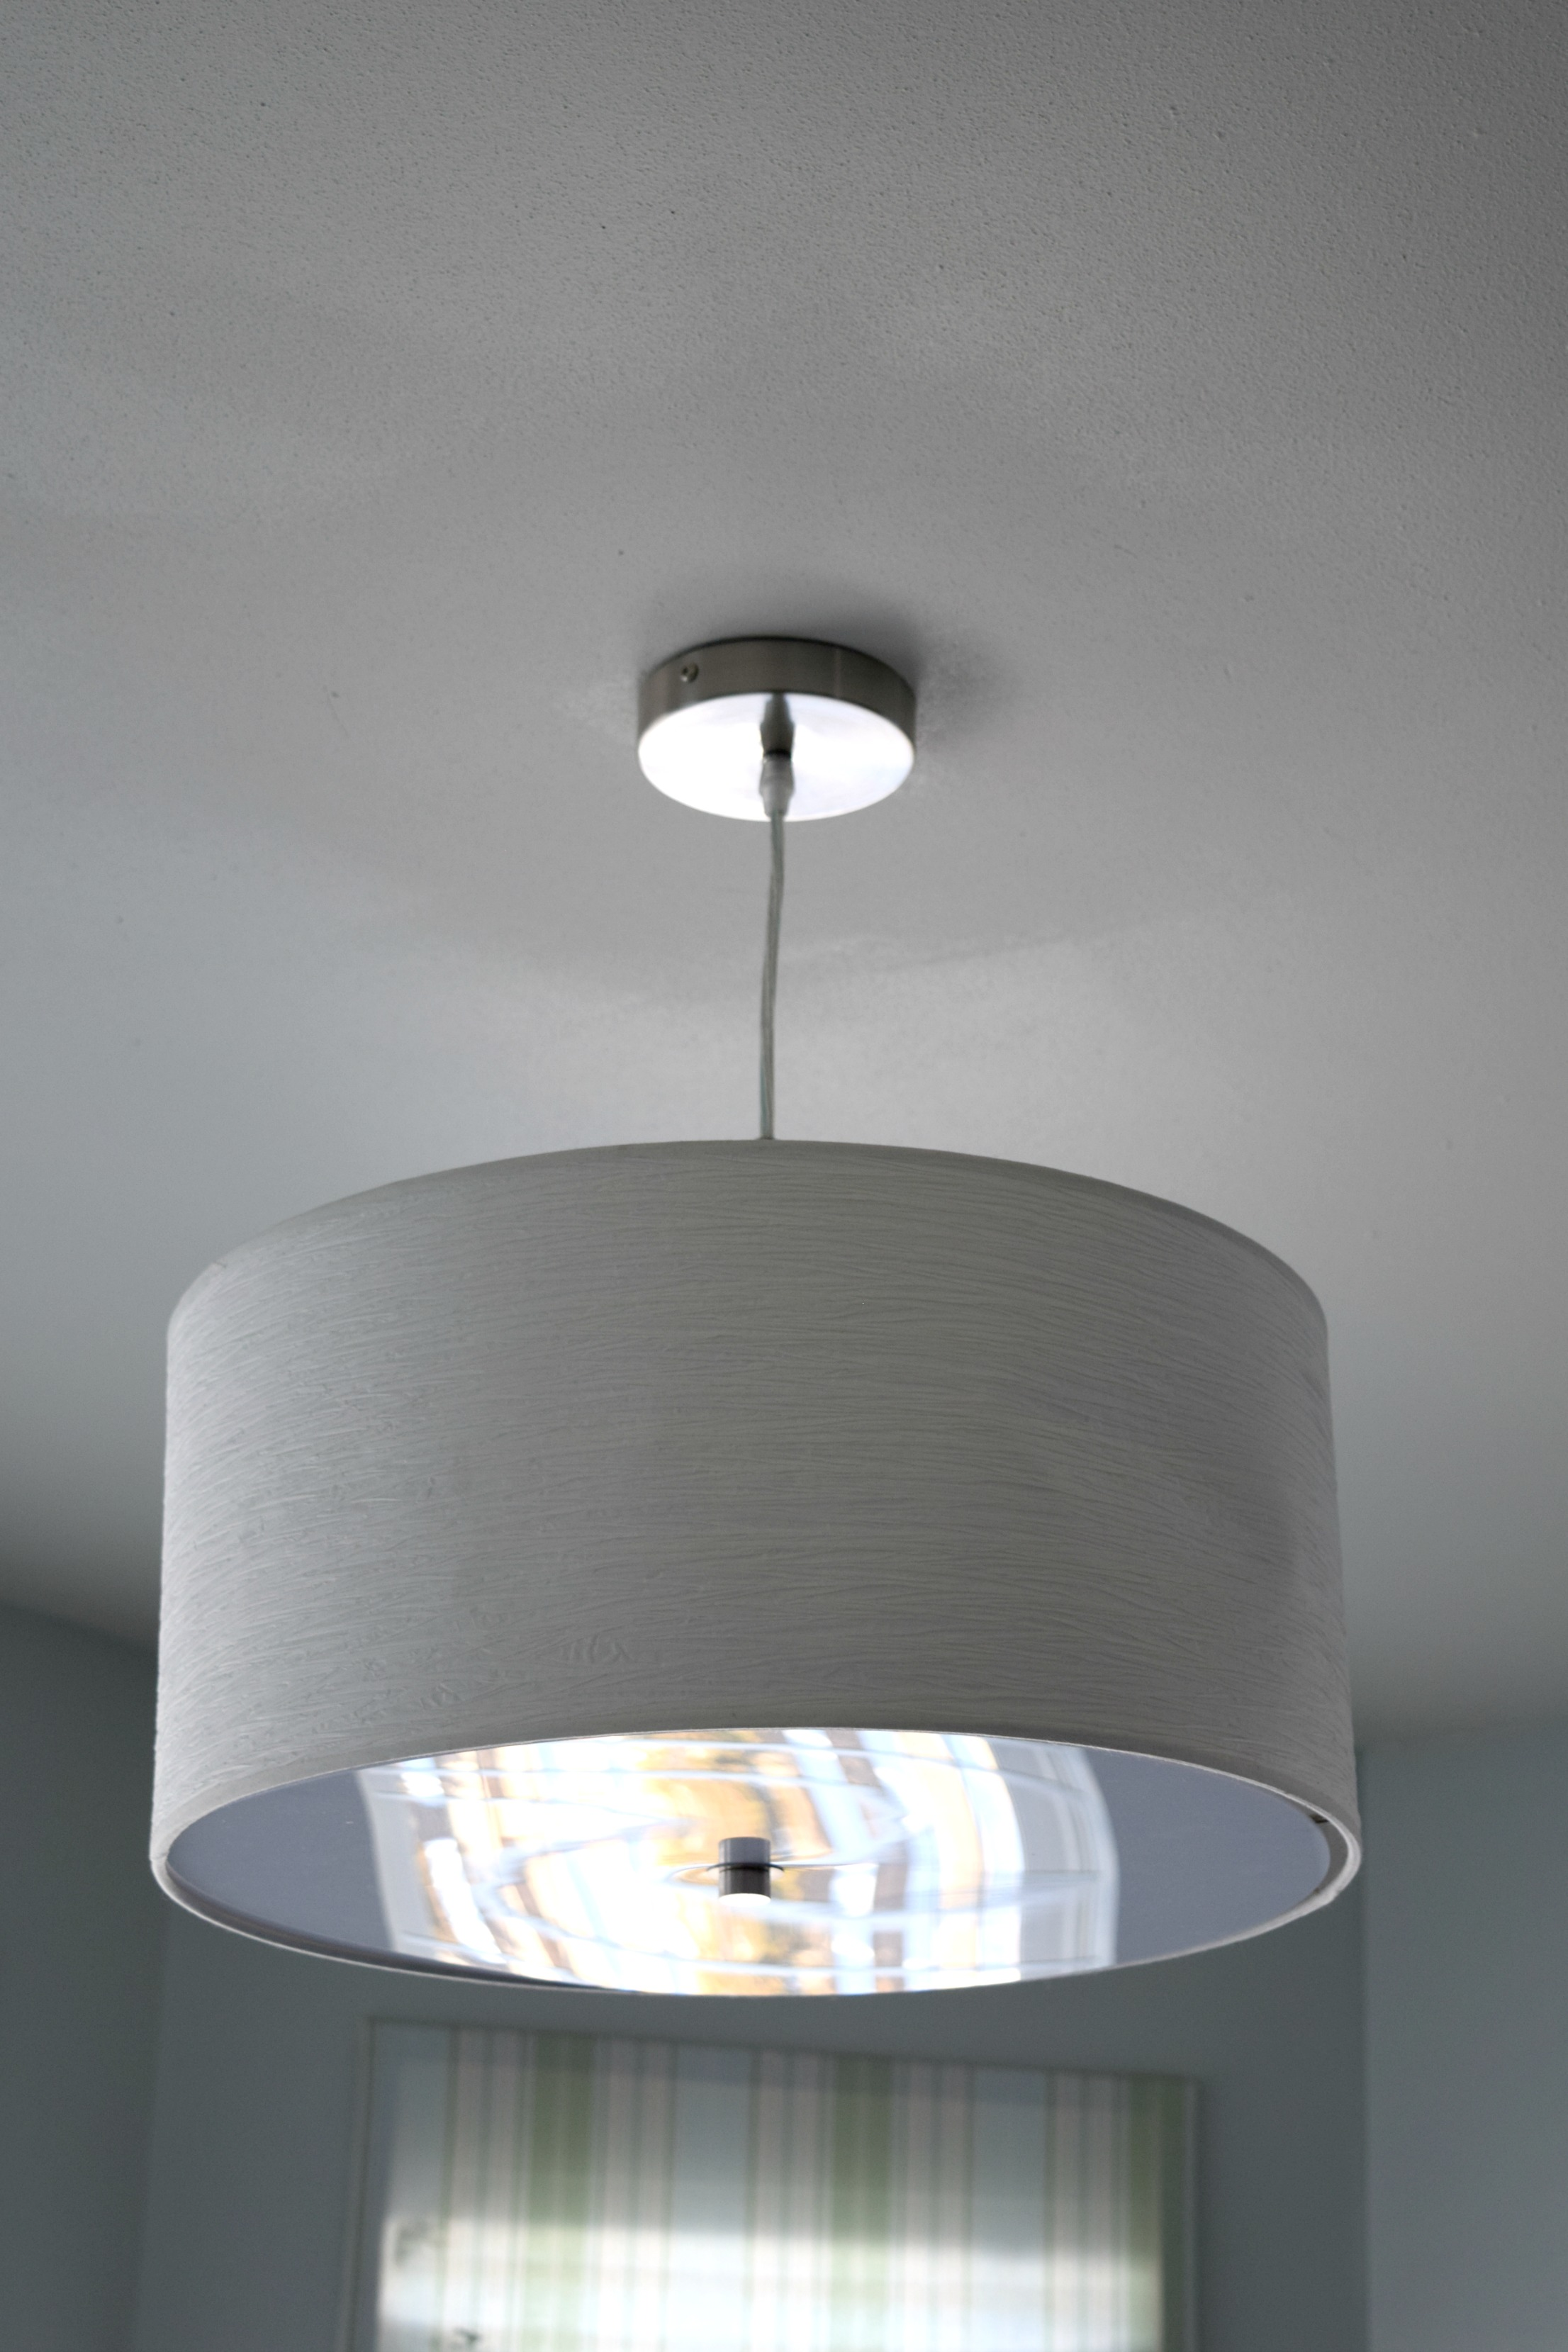 conetemporary-ceiling-light